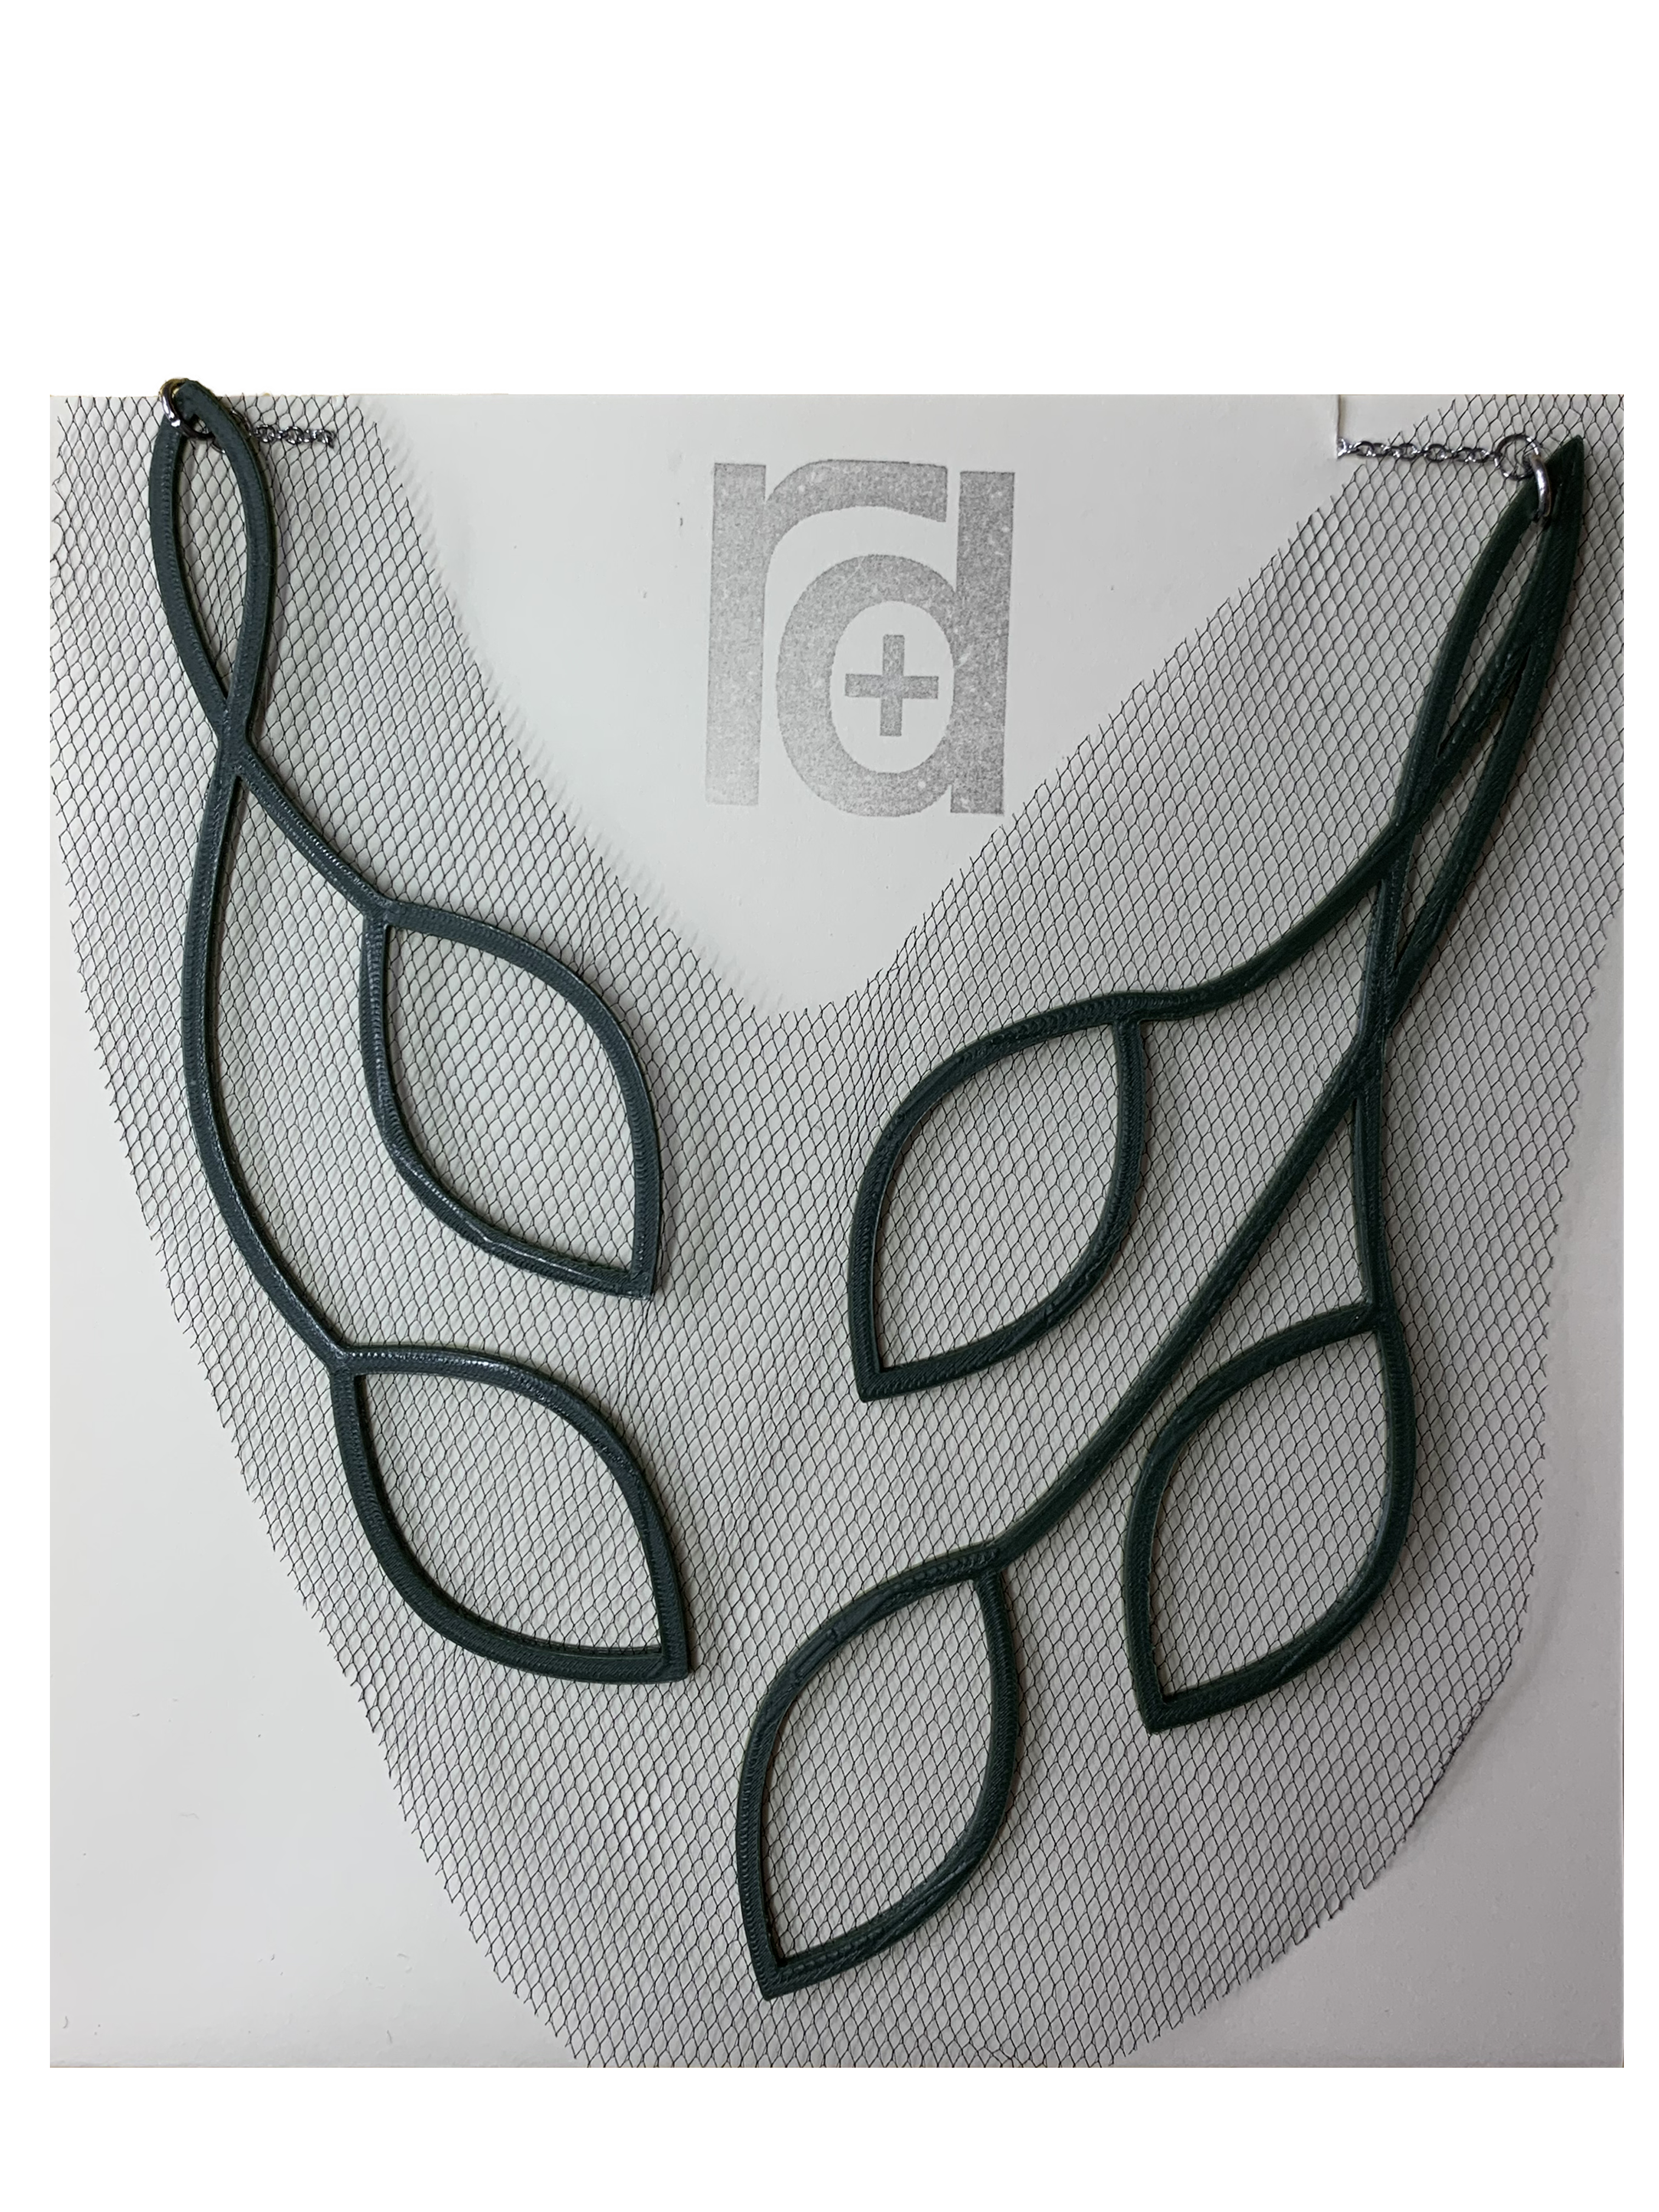 Are You Gonna Grow My Way 3D Printed Necklace - Olive Green